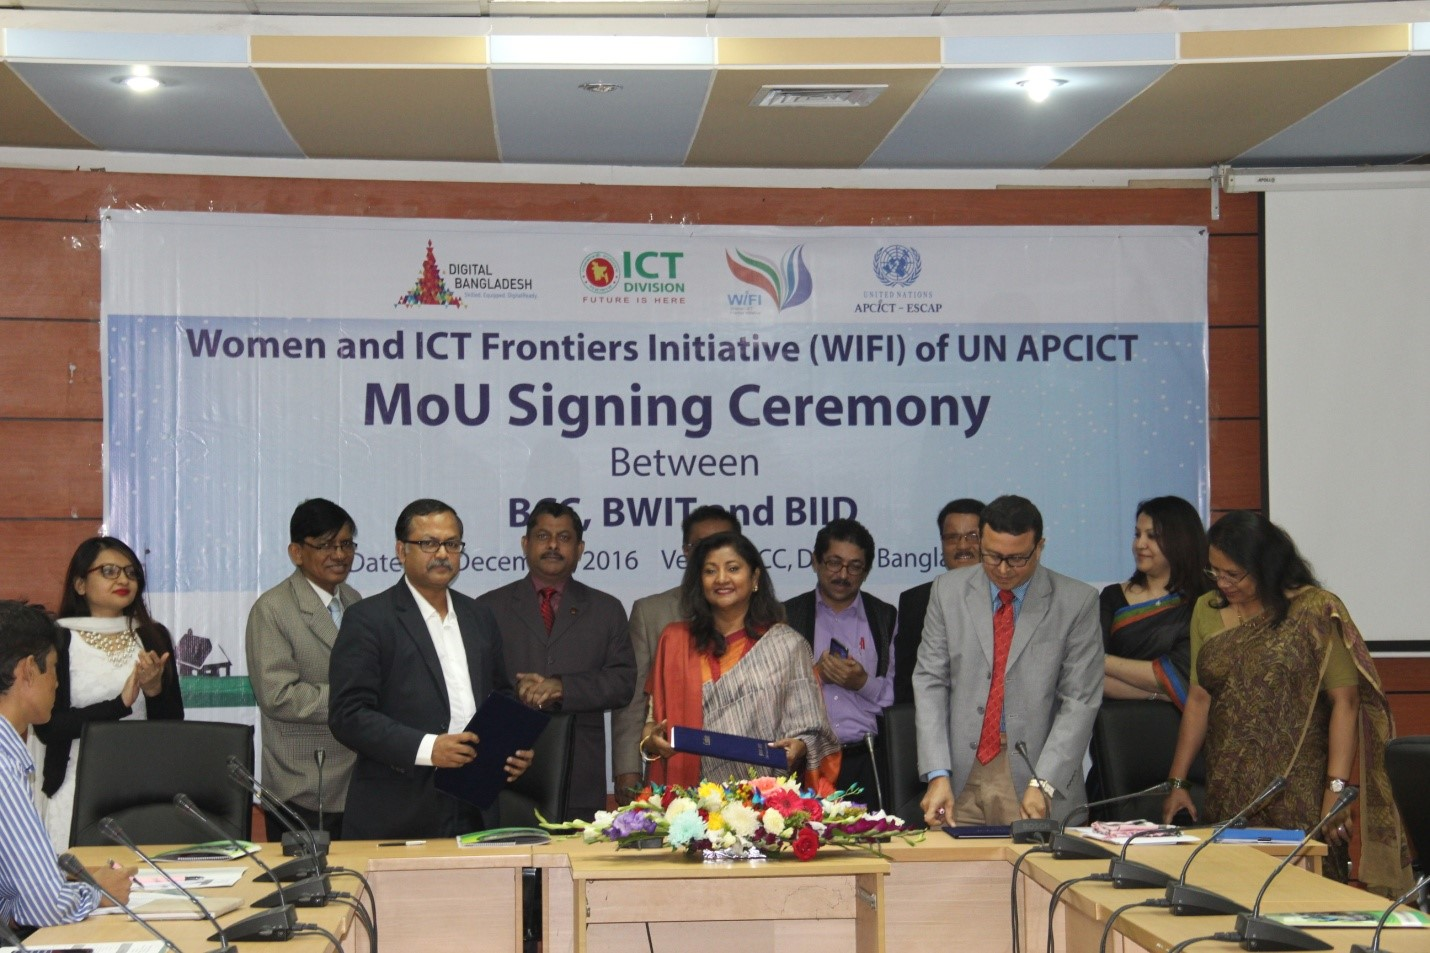 Memorandum of Understanding between Bangladesh Computer Council , ICT Division, BWIT and BIID; Bangladesh initiative for WIFI for SDG Goal 5